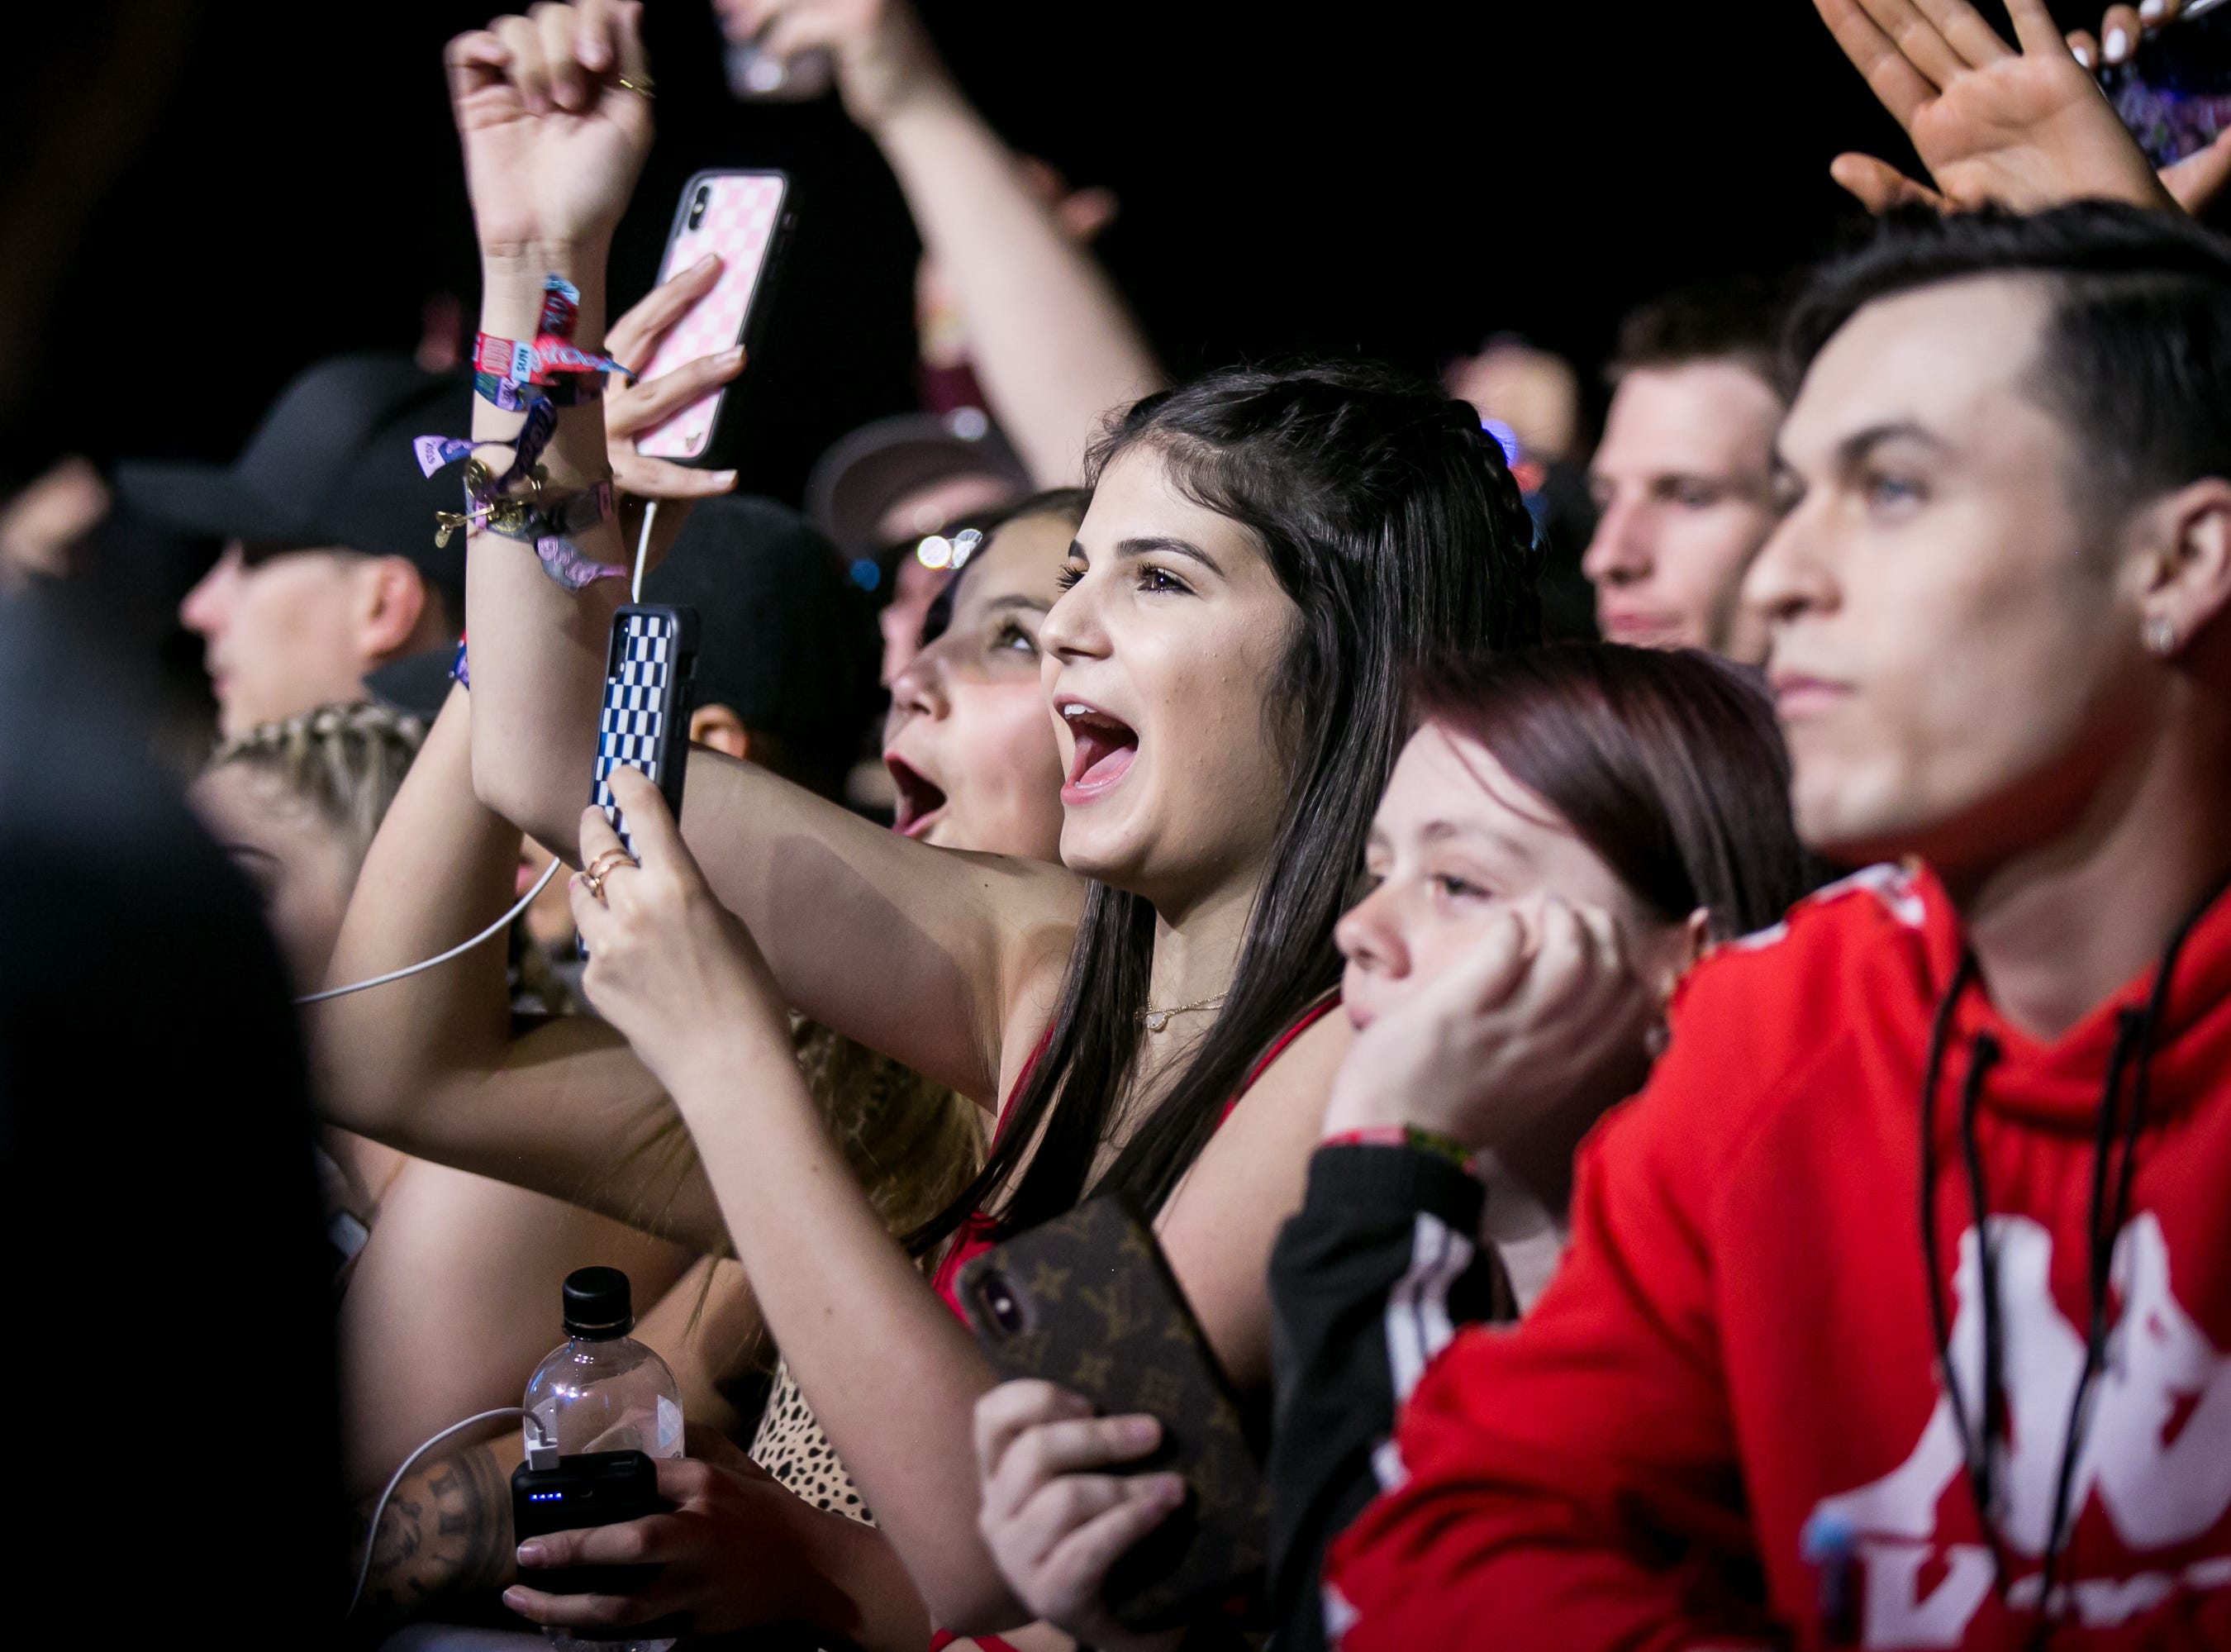 Attendees watch Kodak Black perform during Pot of Gold Music Festival at Steele Indian School Park on March 16, 2019.